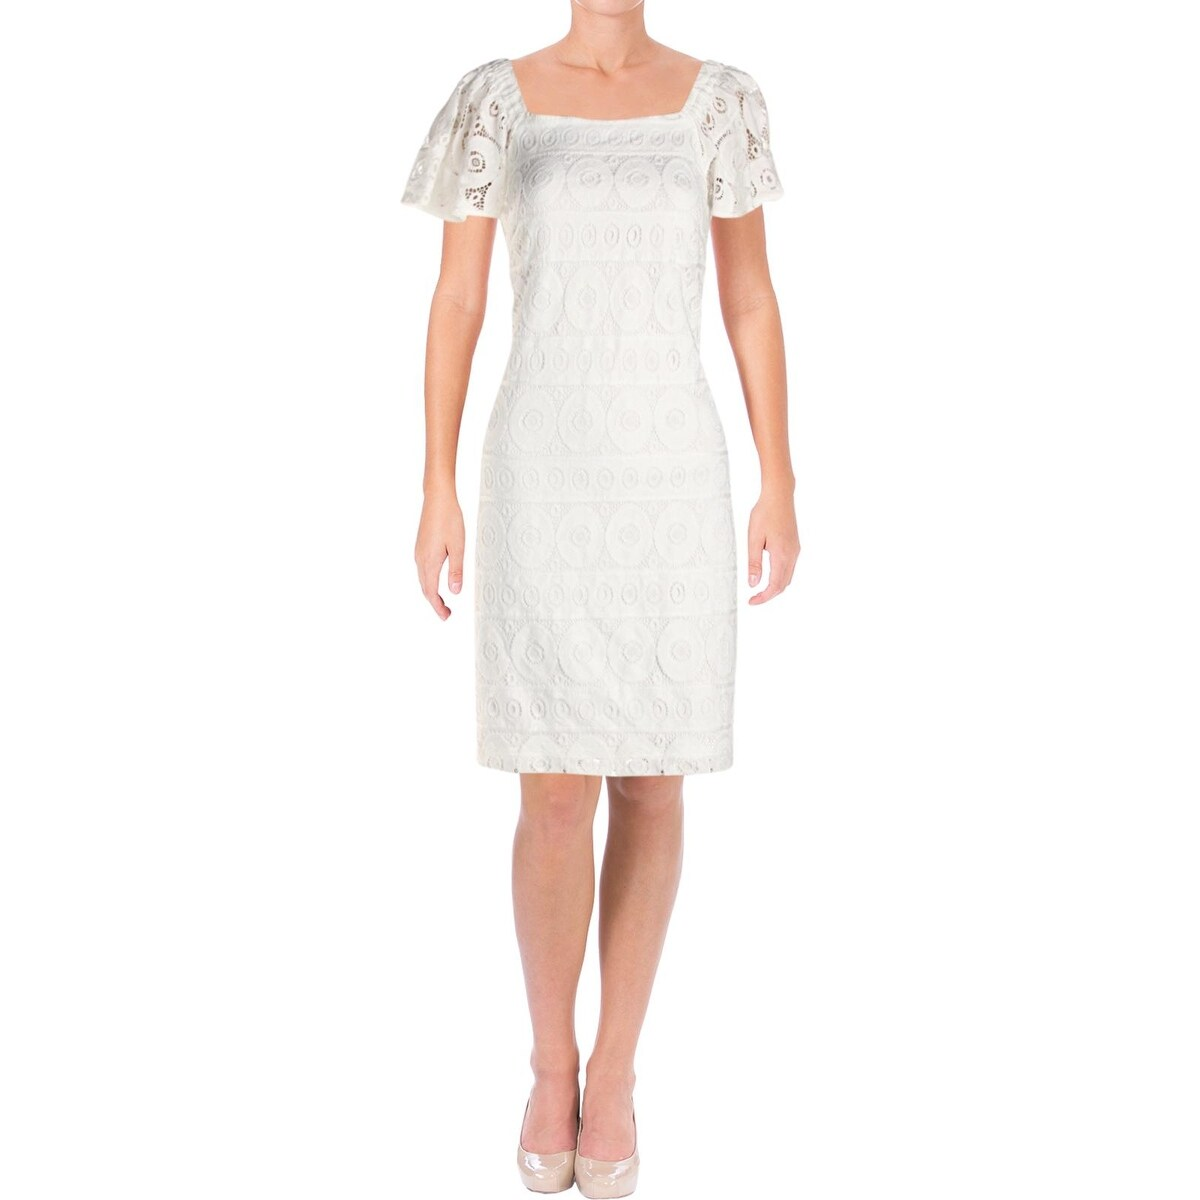 5779a8b46283 Shop Signature By Robbie Bee Womens Petites Party Dress Off-The-Shoulder  Lace - 10P - Ships To Canada - Overstock - 24267954